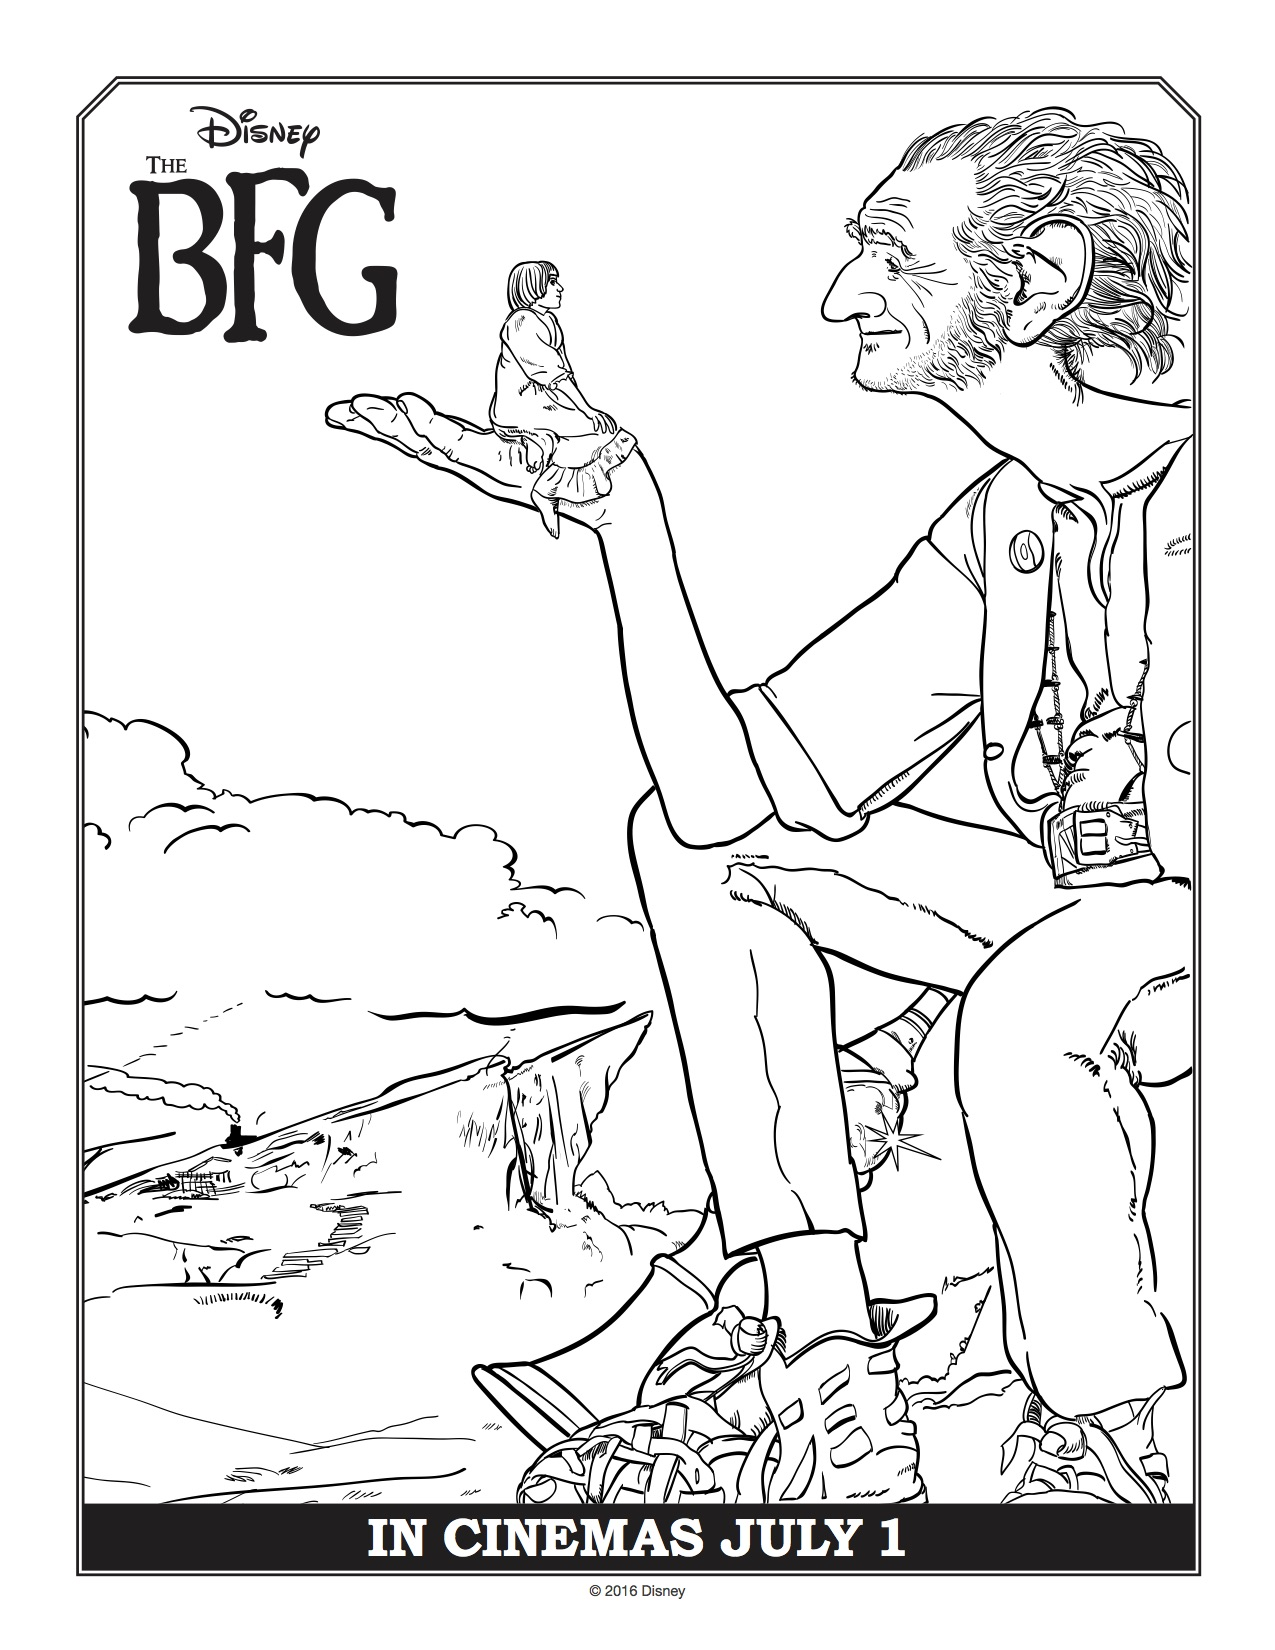 bfg coloring pages Disney's THE BFG Coloring Pages   donnahup.com bfg coloring pages